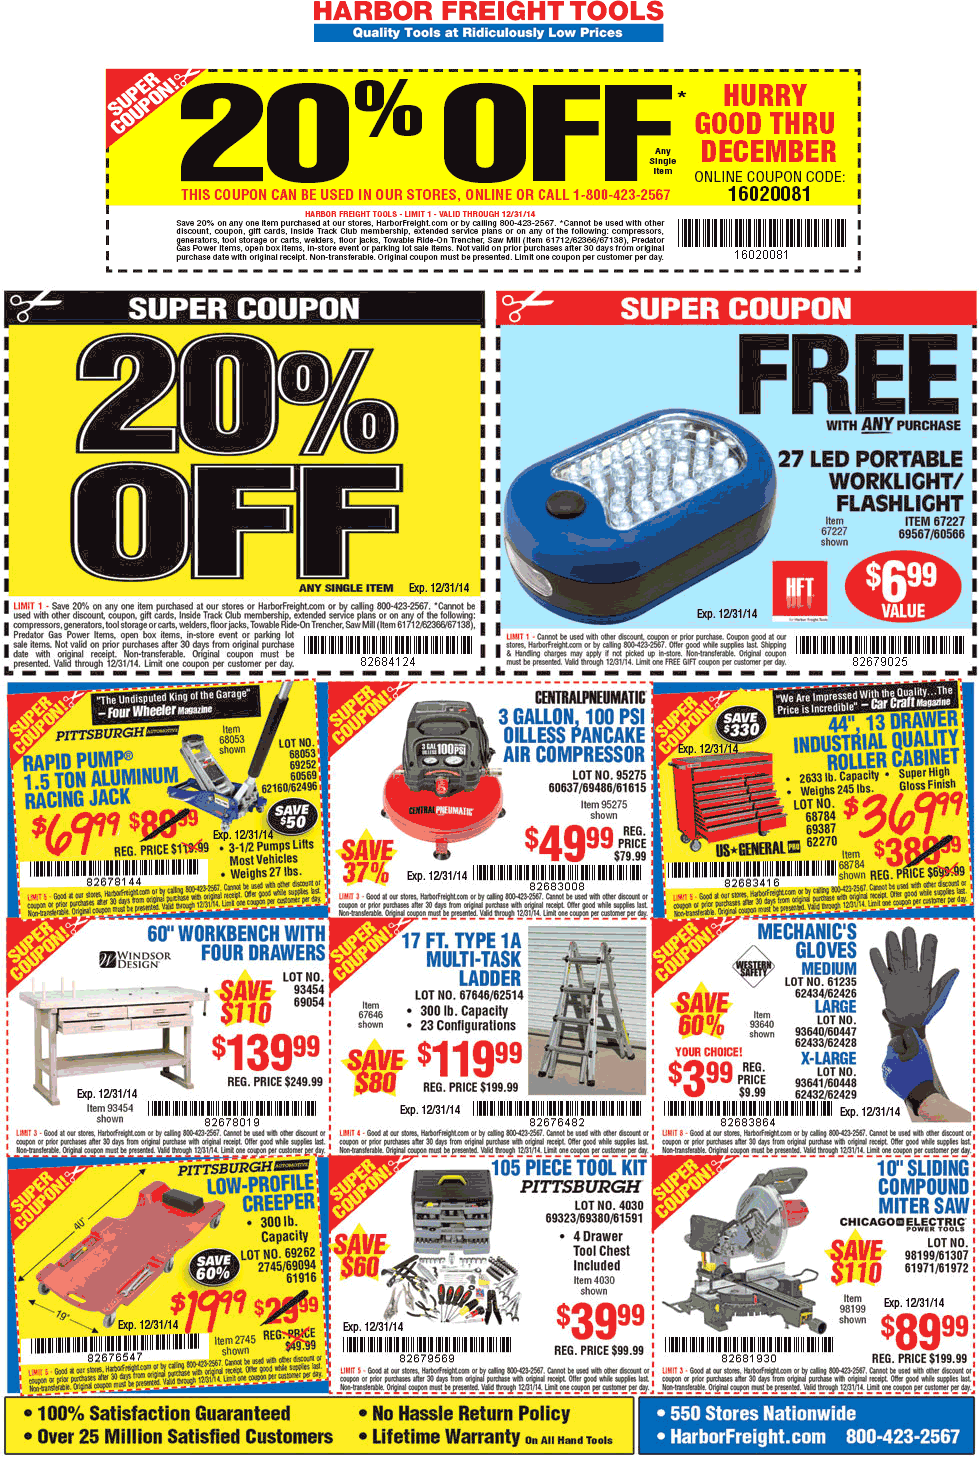 Harbor Freight Coupon April 2017 20% off a single item & more at Harbor Freight Tools, or online via promo code 16020081